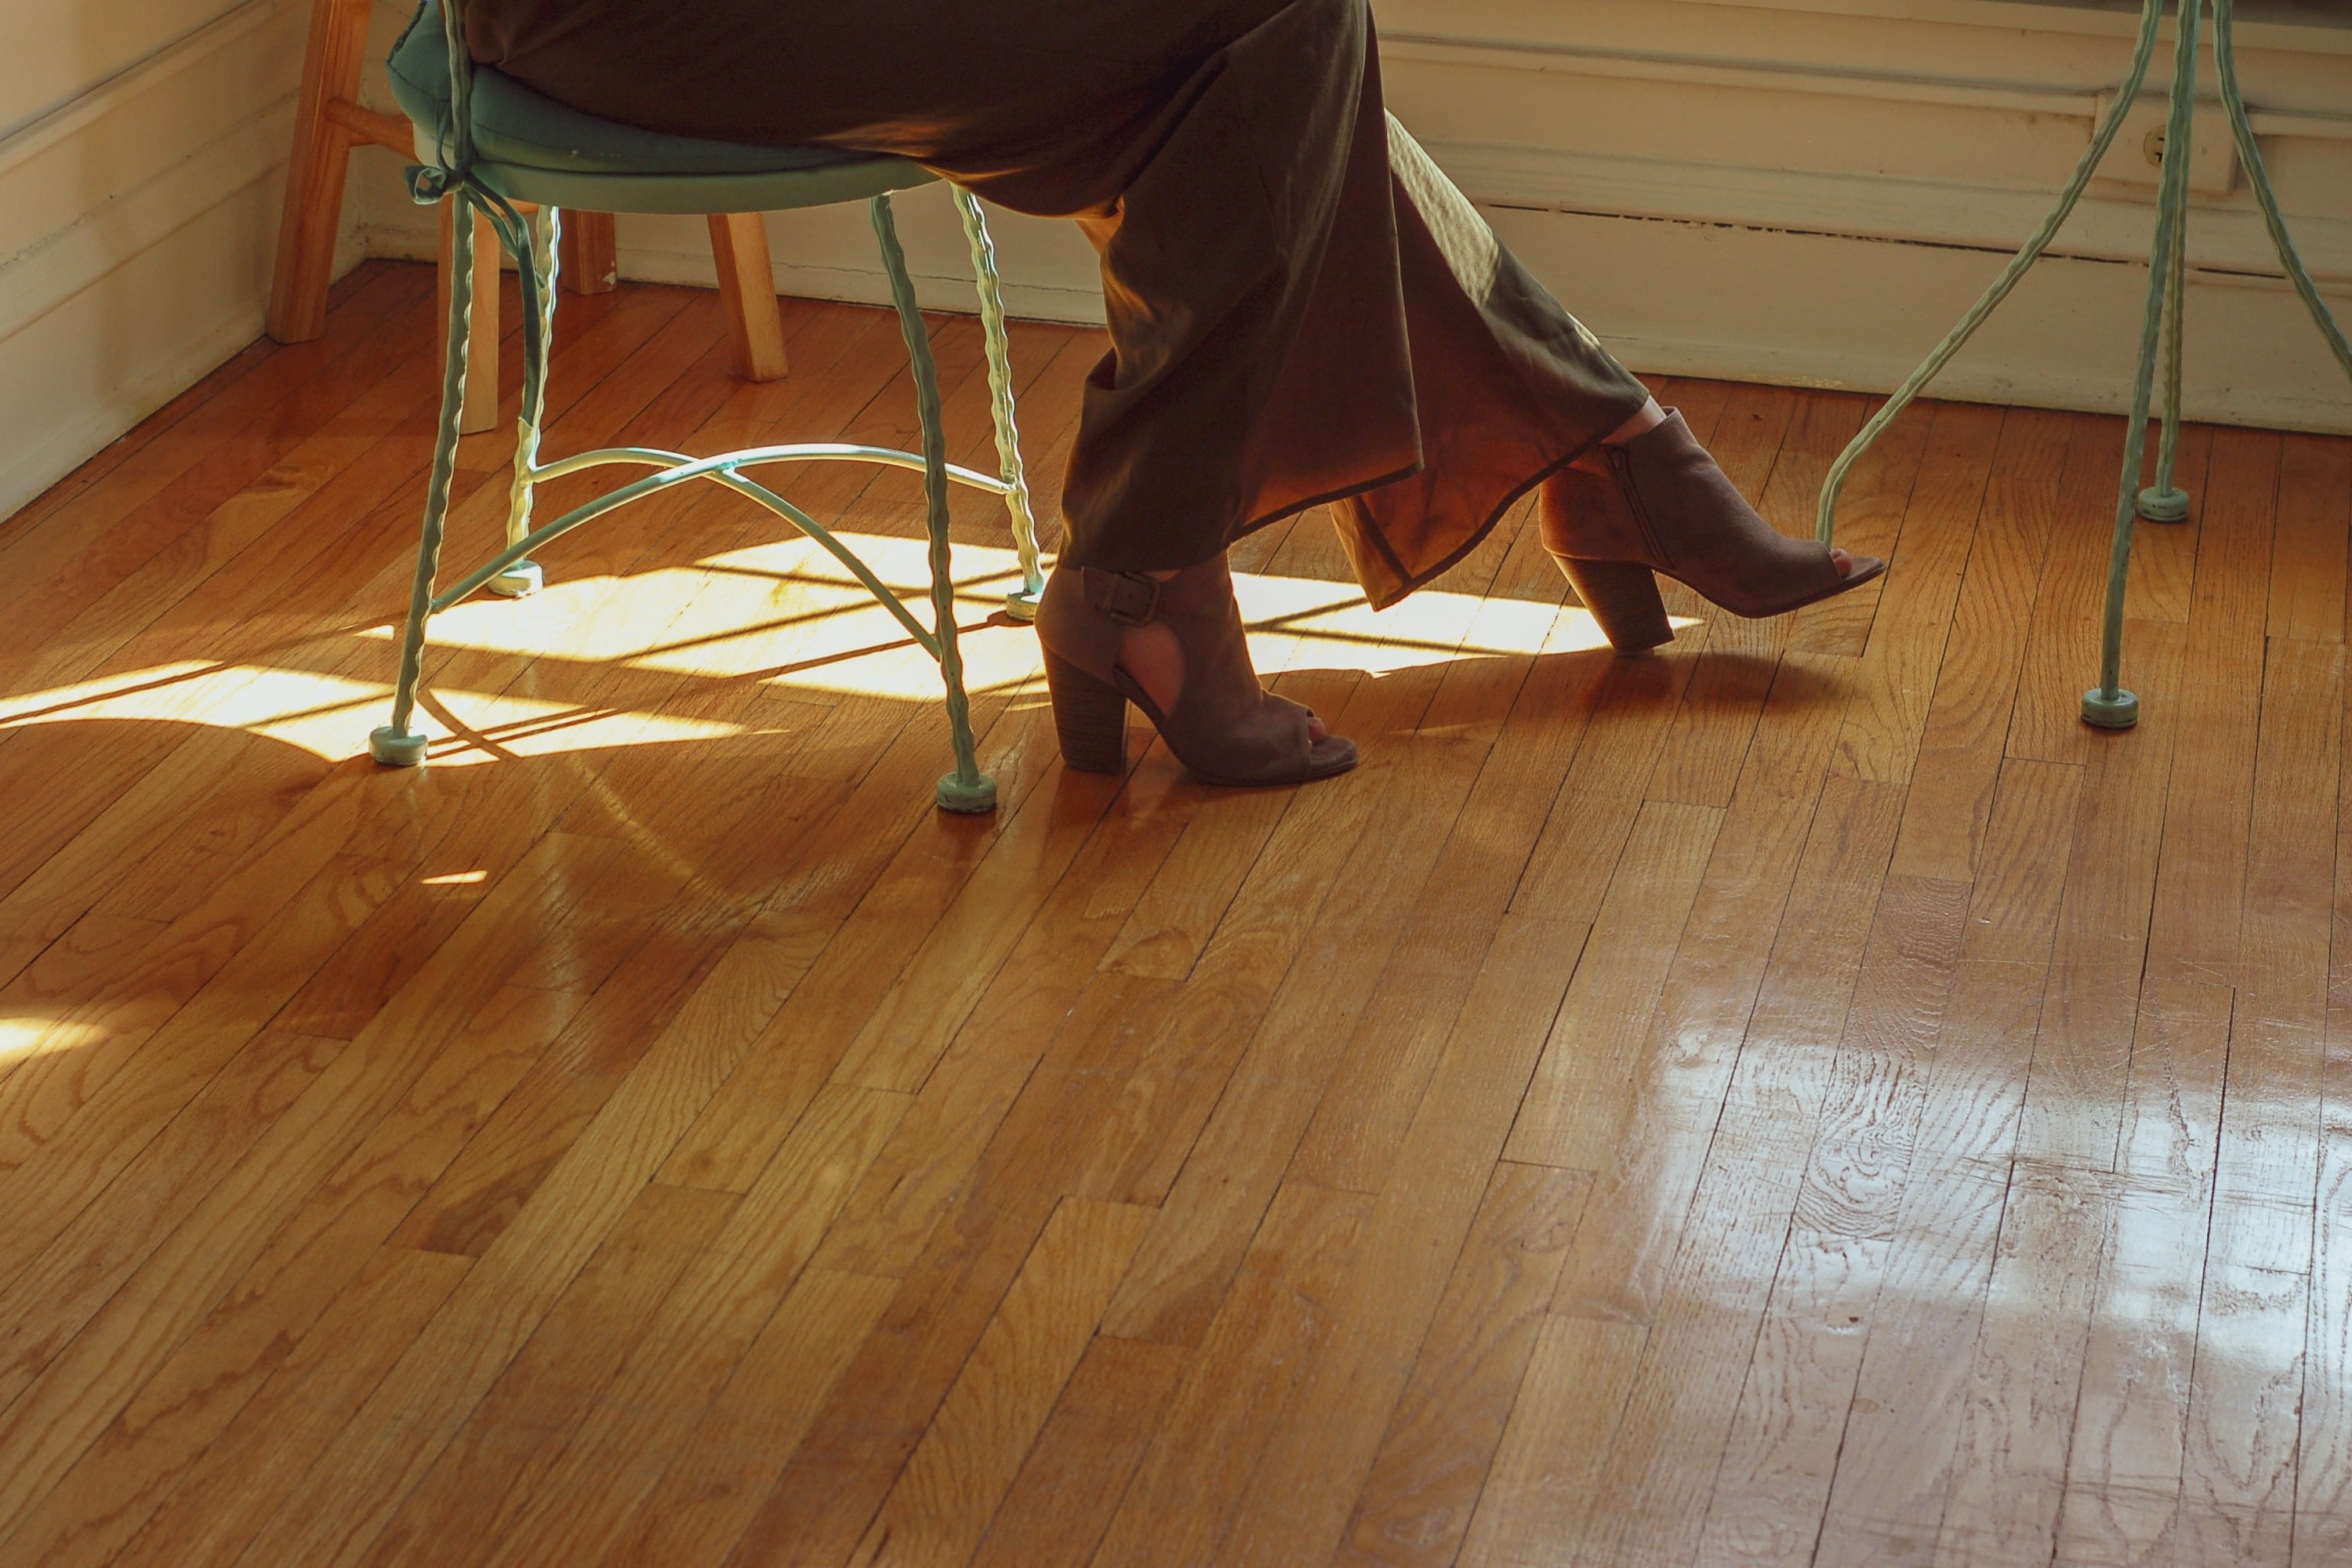 5 Common Wood Floor Repairs Every Home Owner Should Know | 21Oak